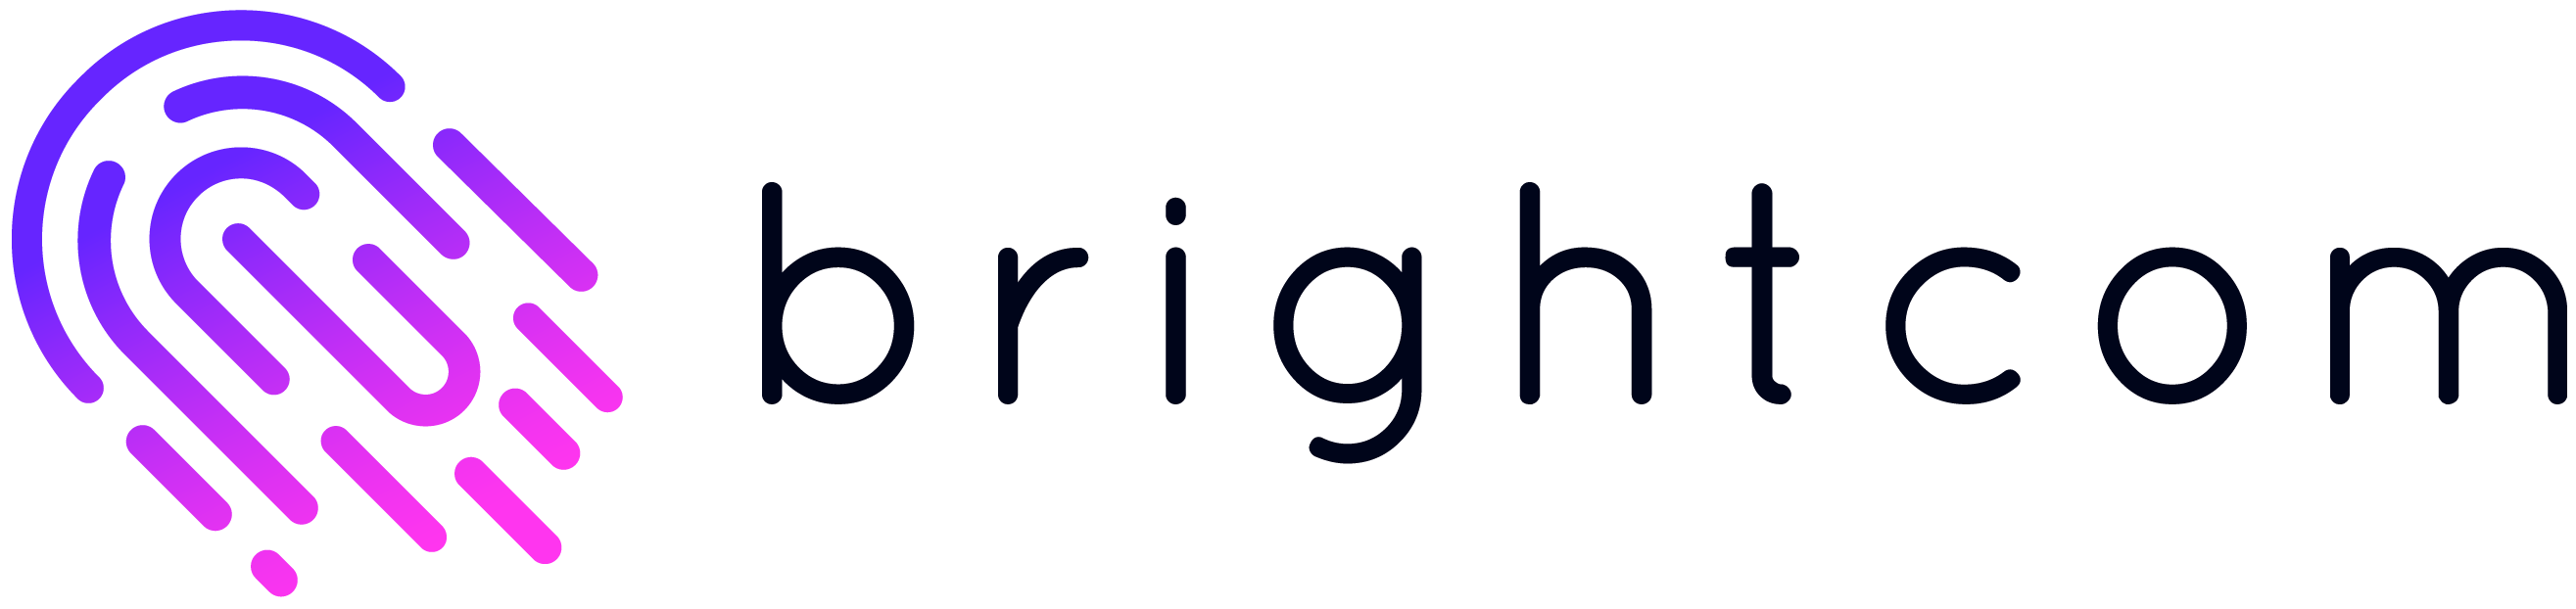 brightcom logo png supply side platform ssp